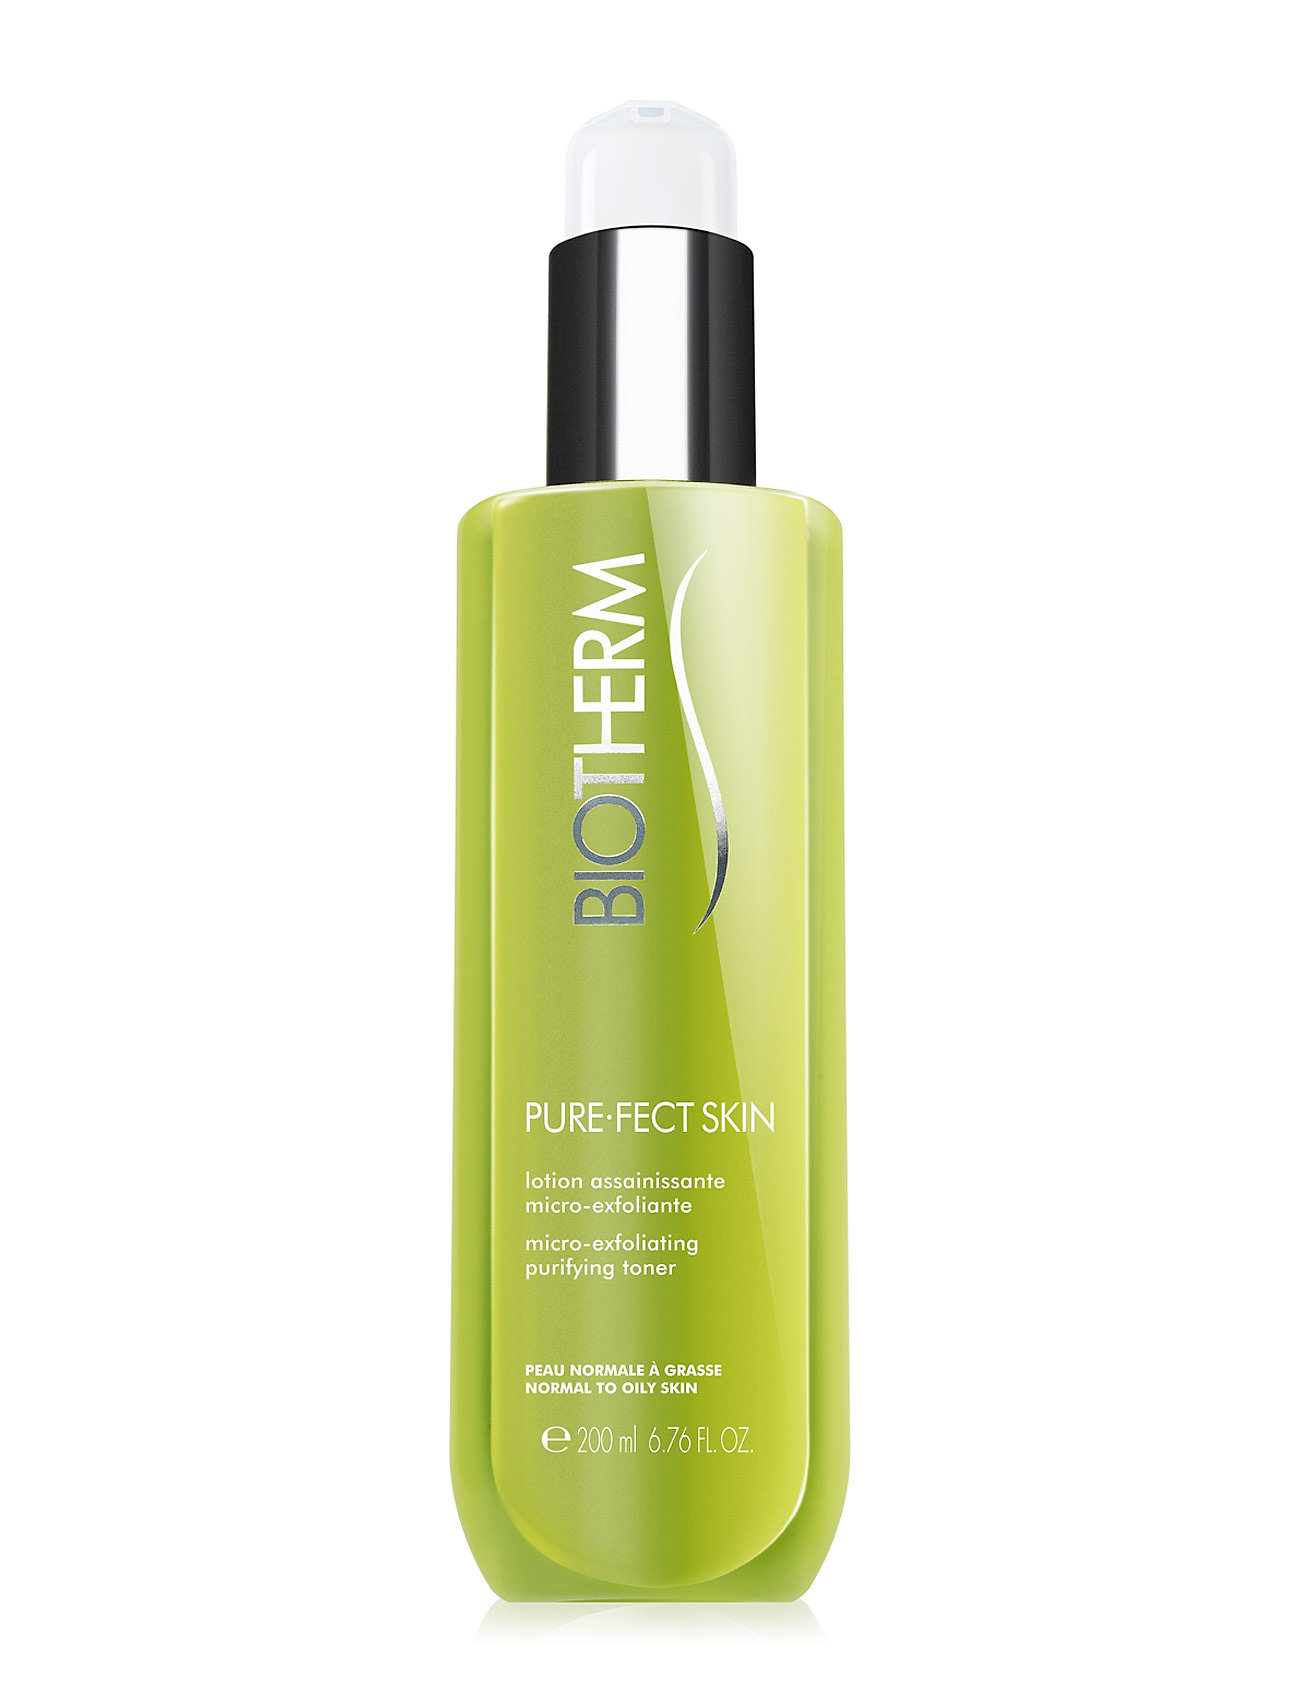 biotherm – Pure-fect skin lotion tonic 200 ml på boozt.com dk